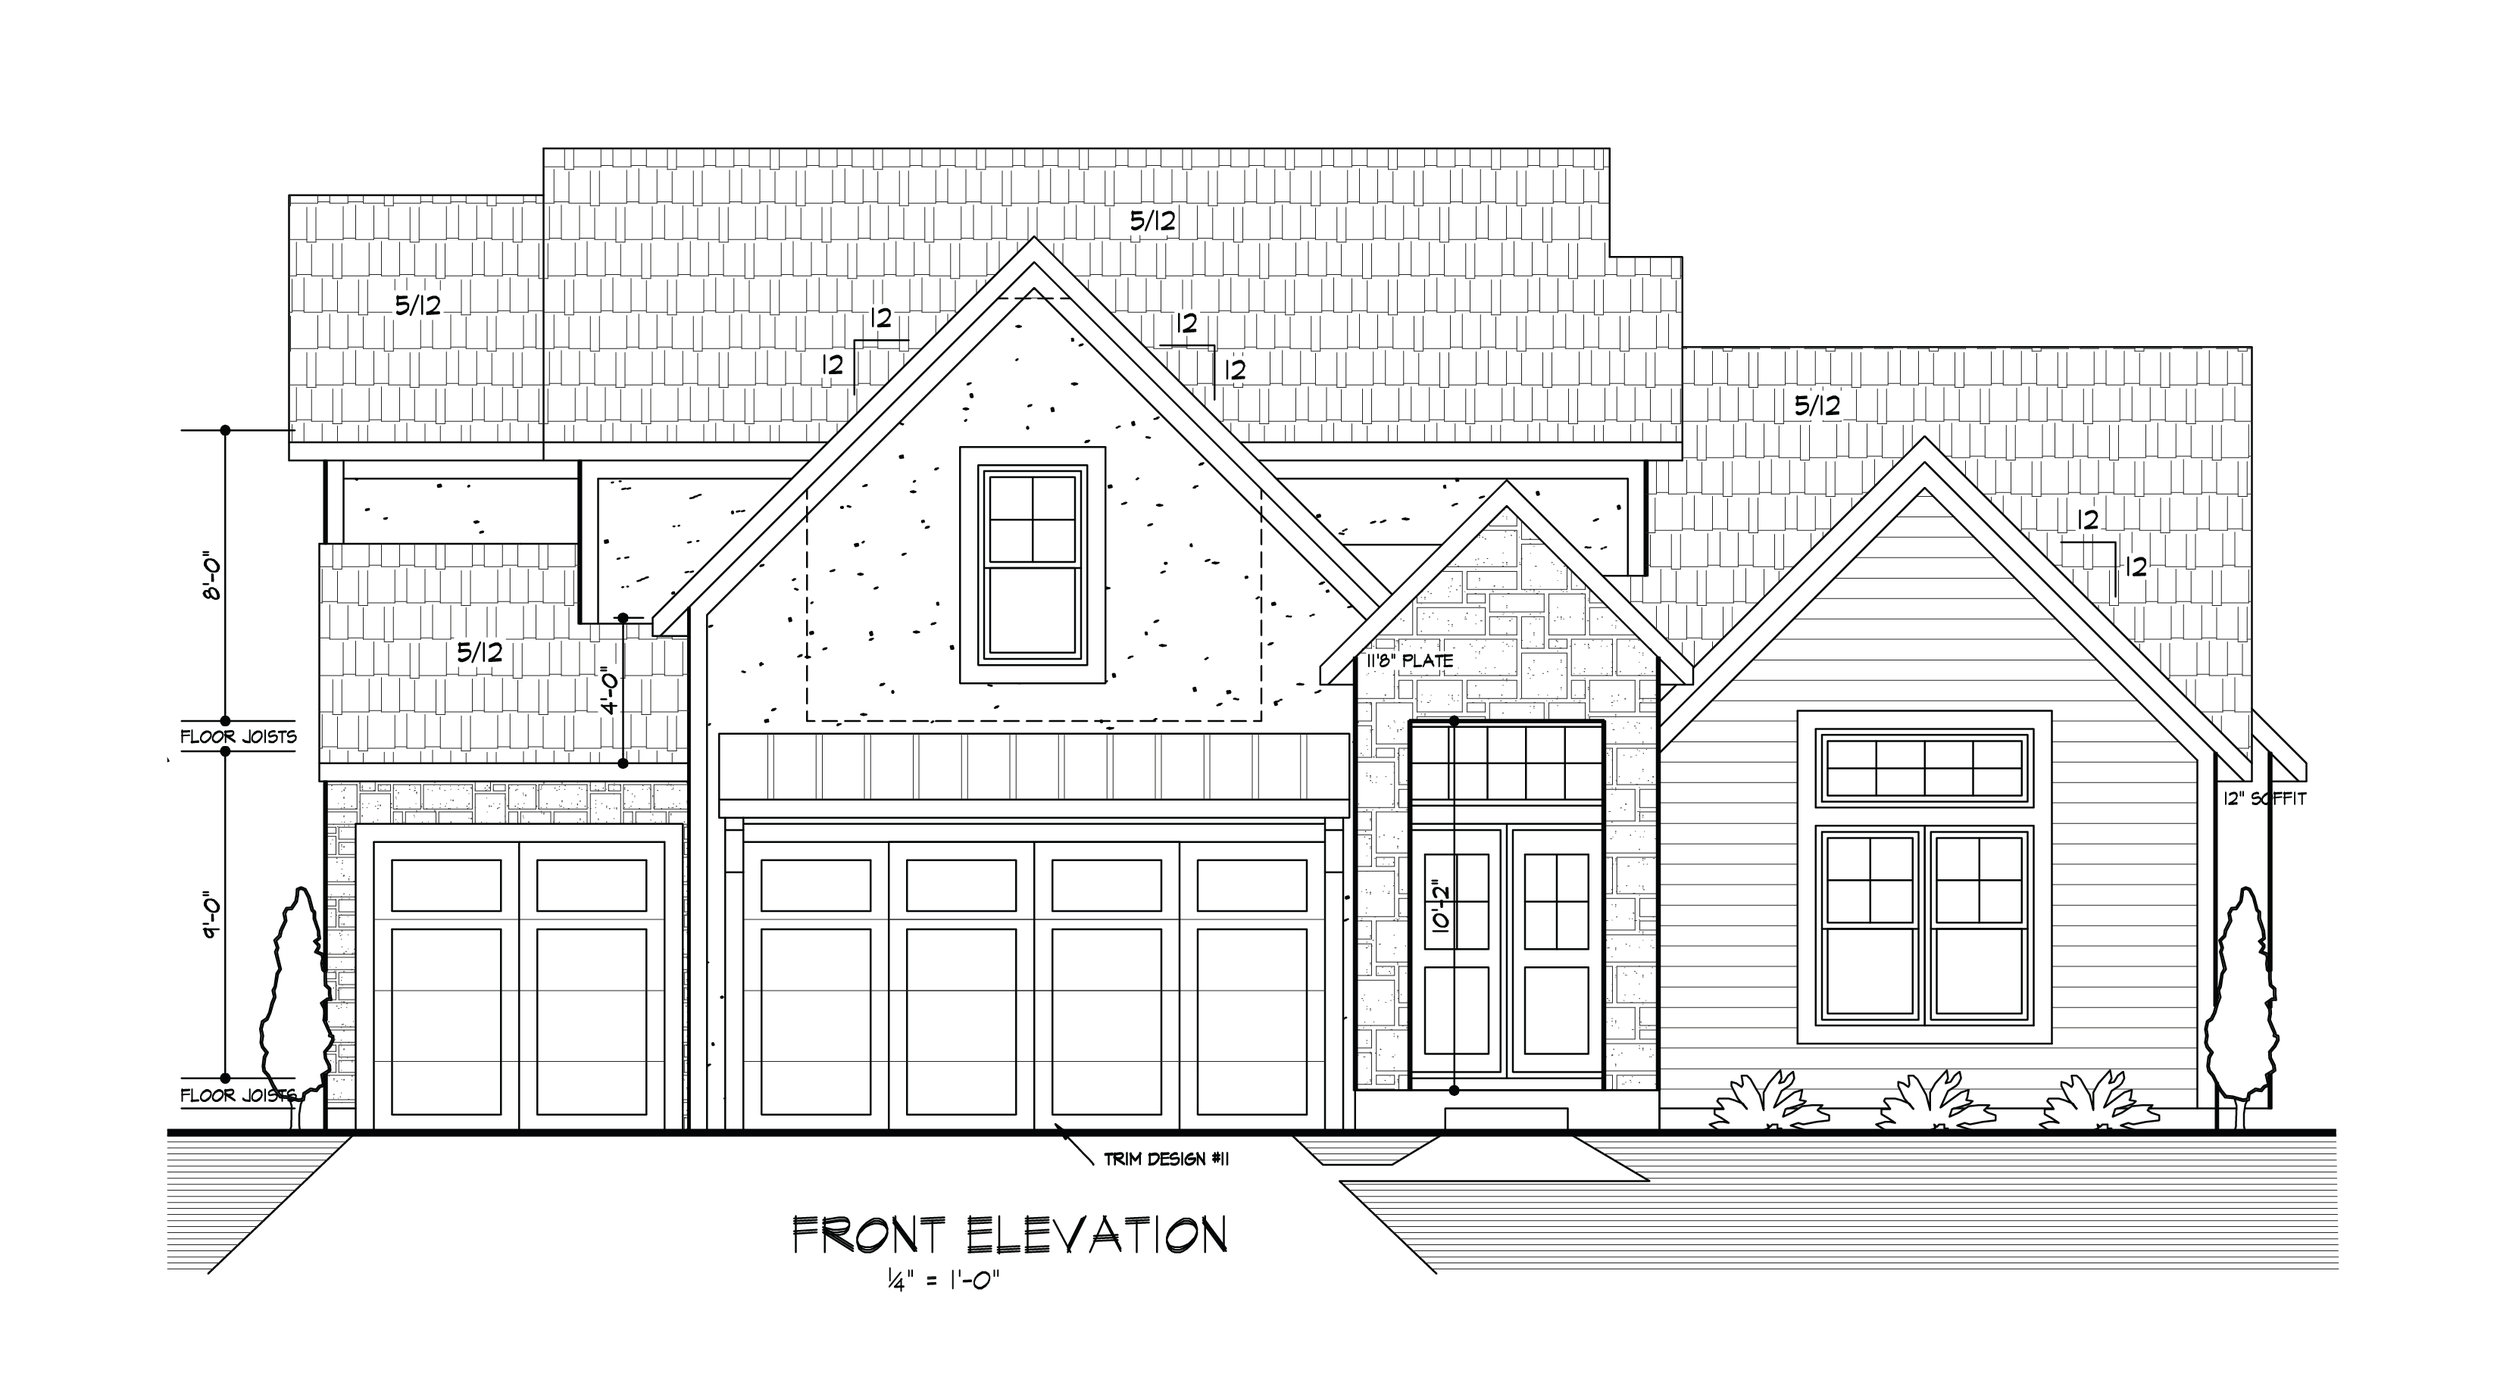 The new front elevation from the builder